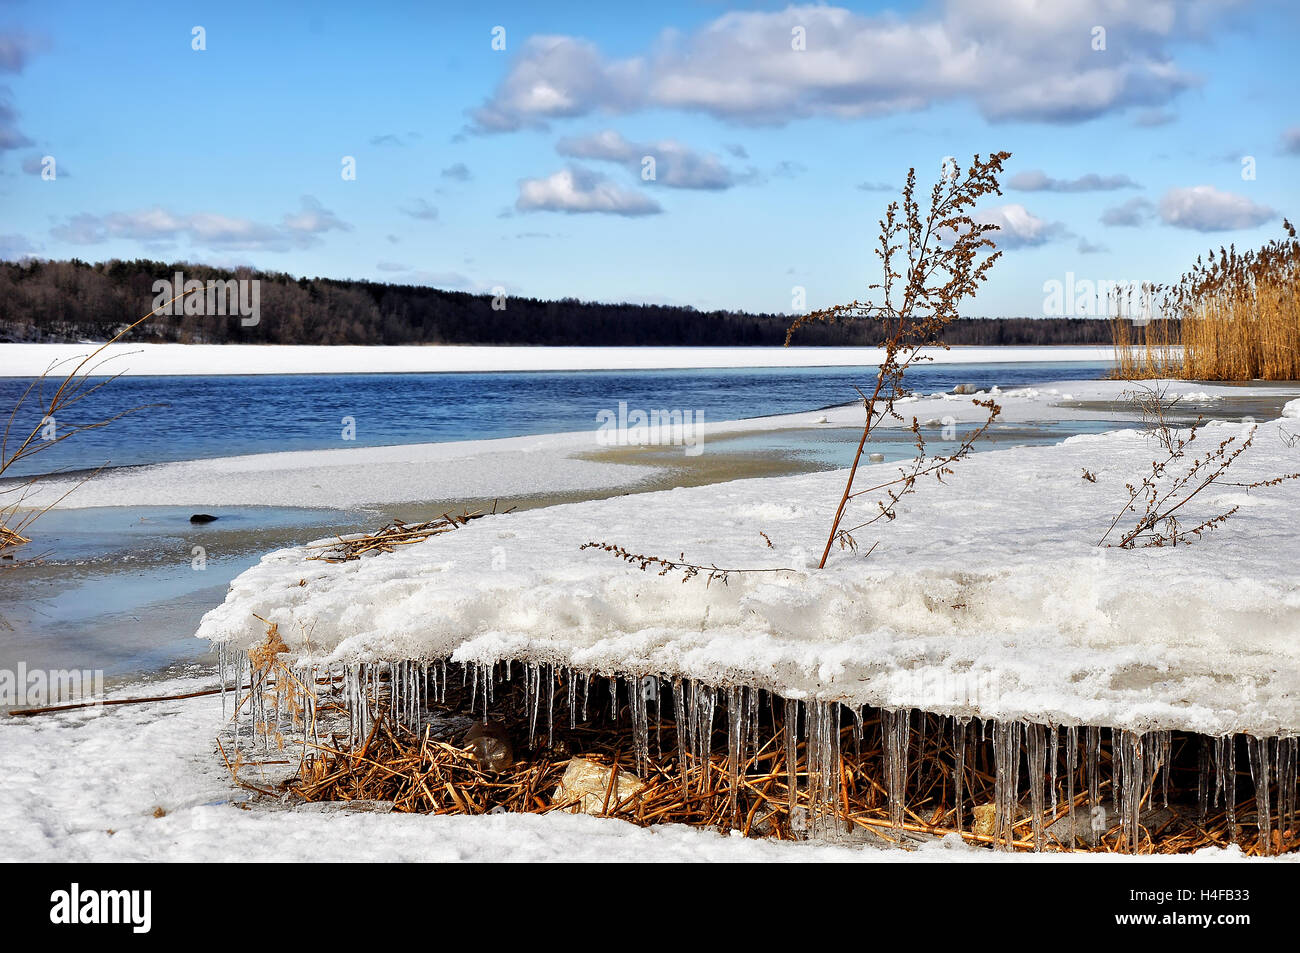 The Neva river in the Leningrad region. - Stock Image